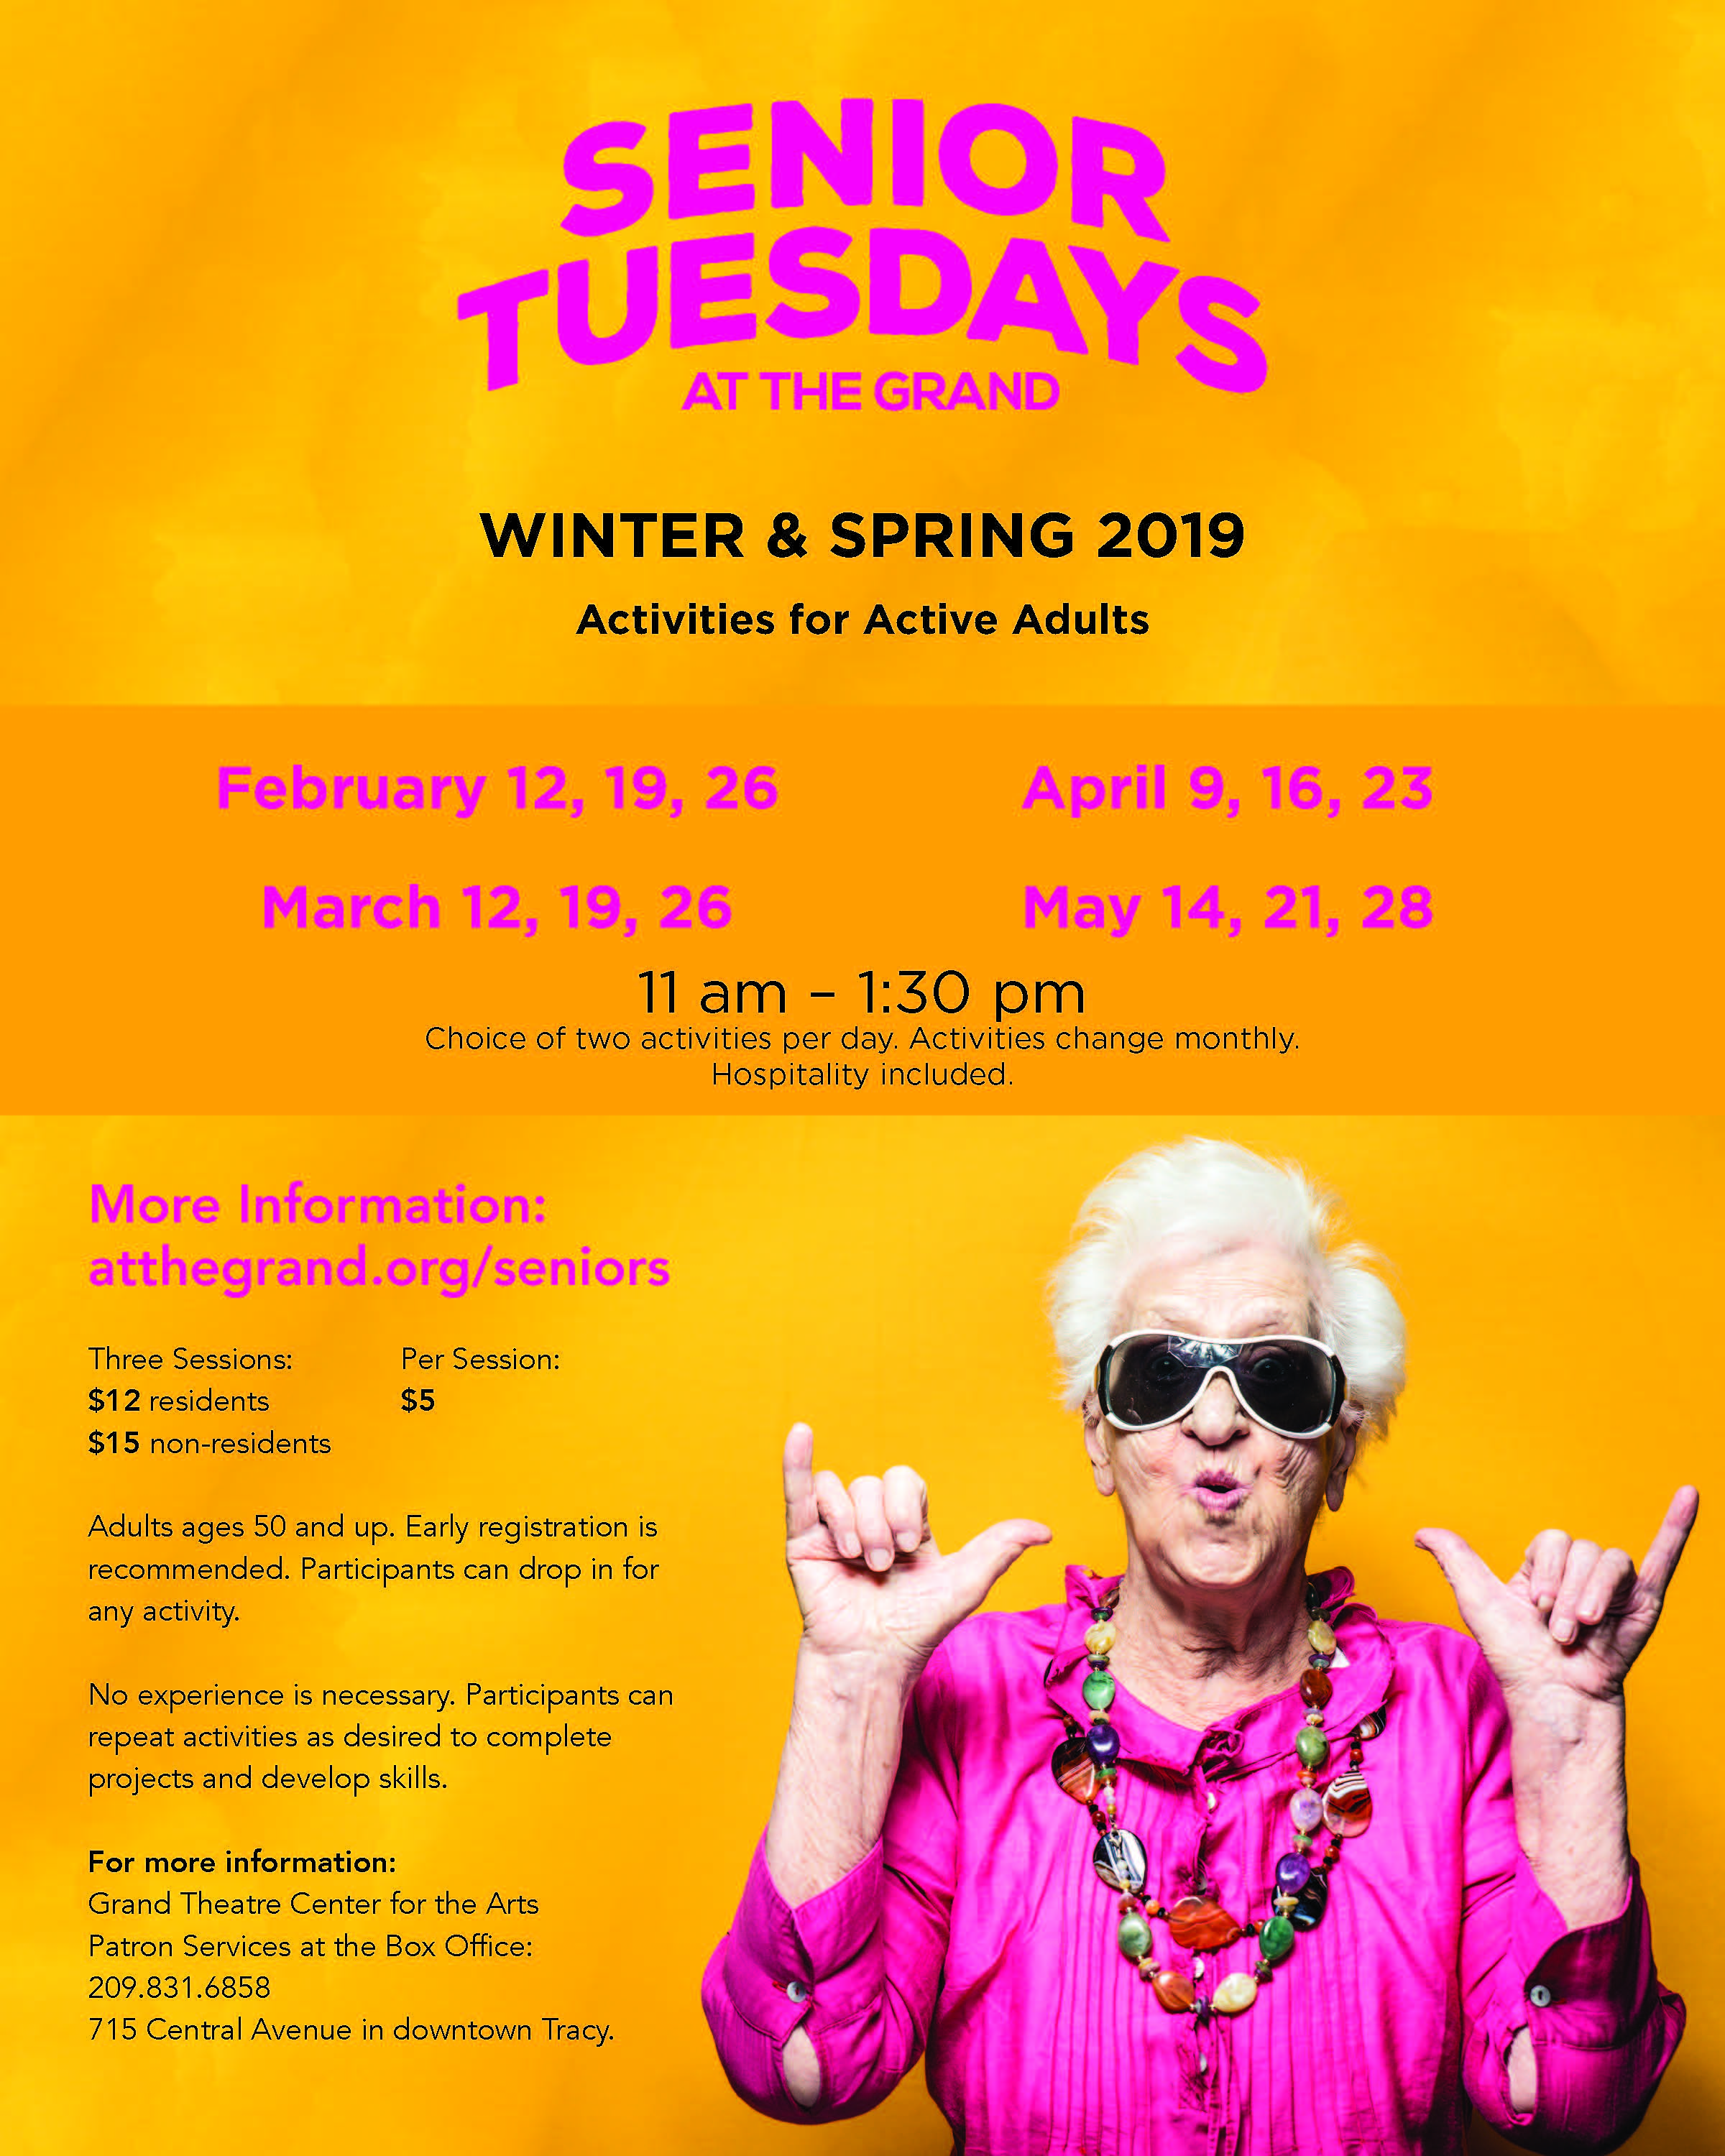 senior-tuesday-at-the-grand-winter-spring-2019